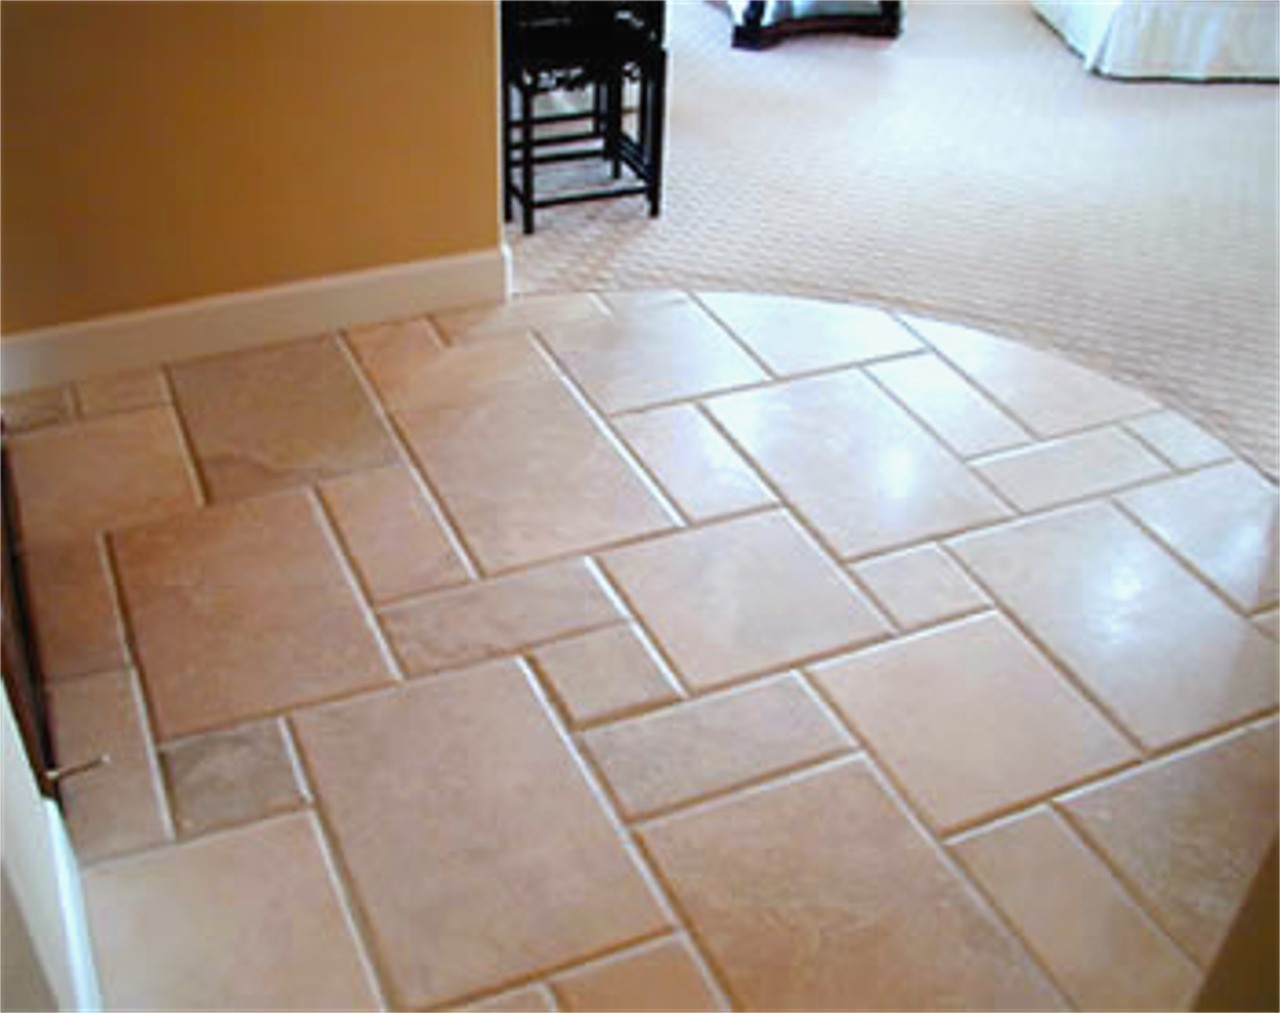 What Do You Use to Clean Ceramic Tile Floors